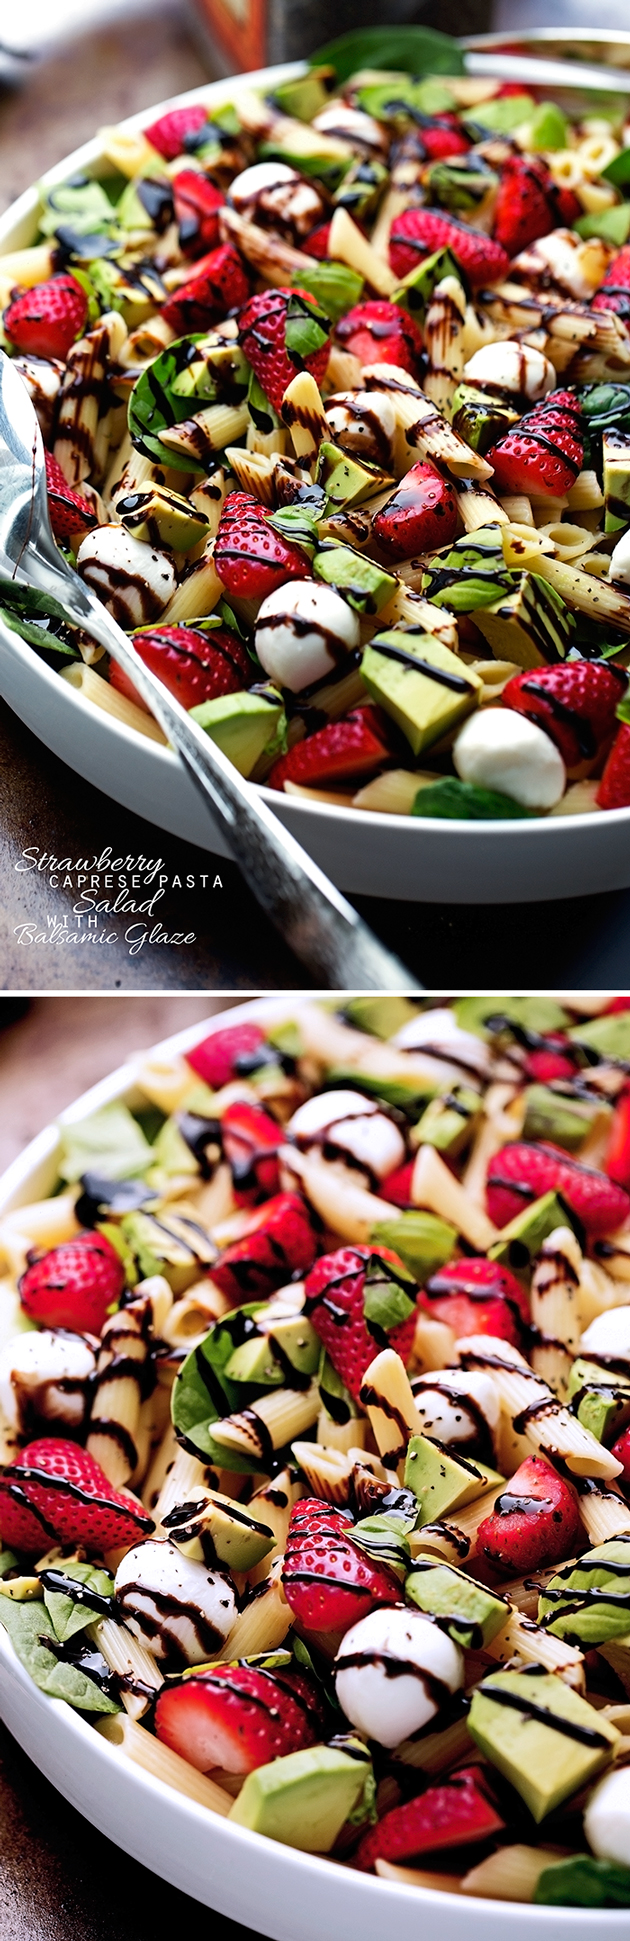 Strawberry Caprese Pasta Salad - Made with a homemade balsamic glaze, this salad is to die for! #pastasalad #capresepastasalad #balsamicglaze   Littlespicejar.com